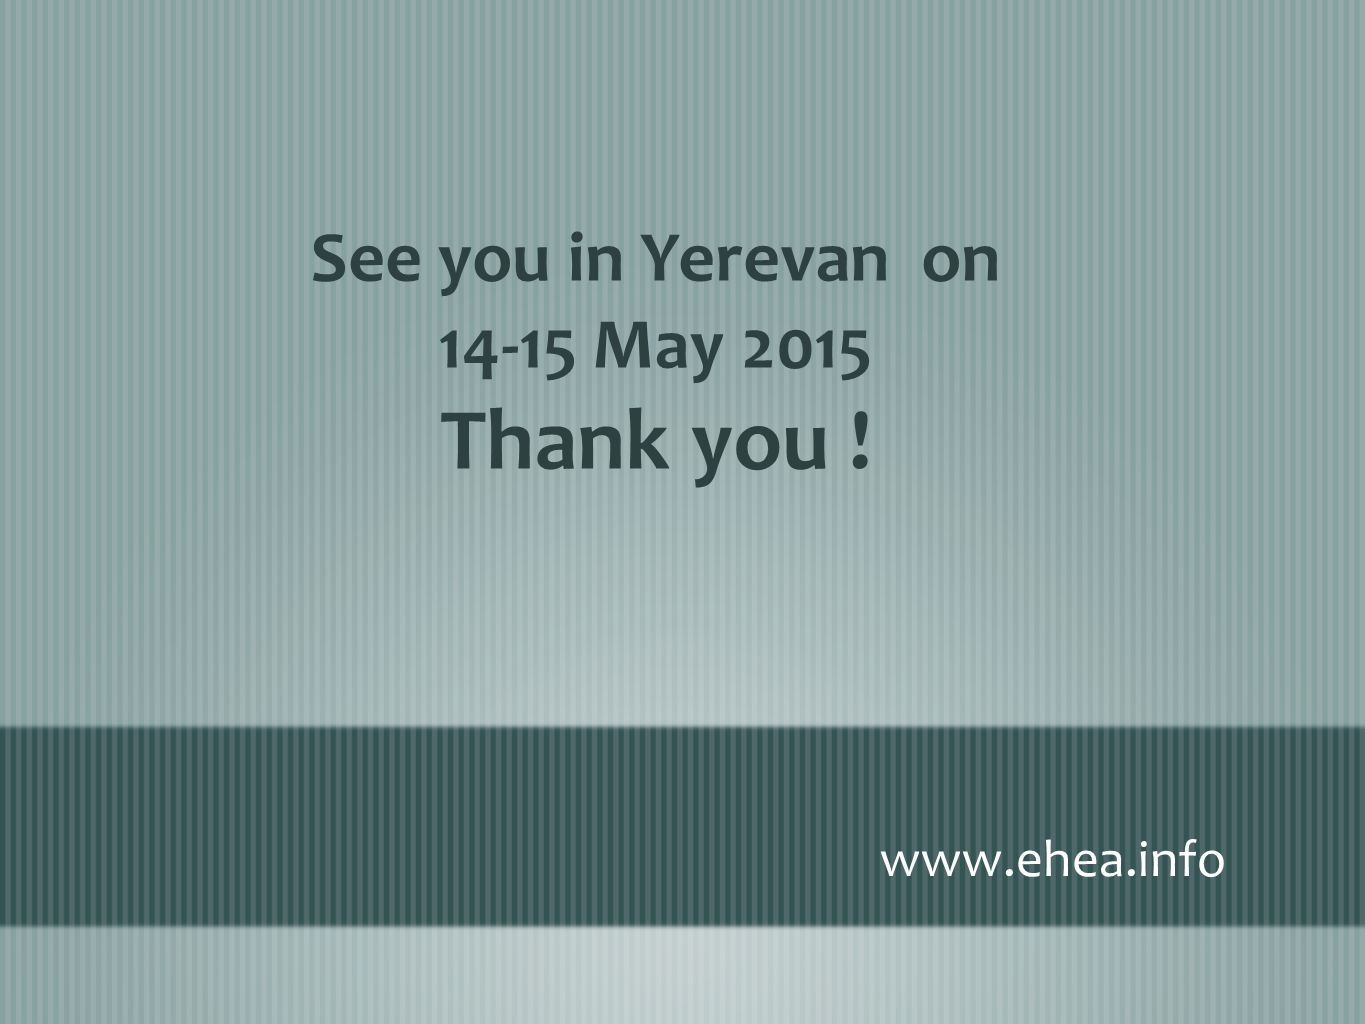 www.ehea.info See you in Yerevan on 14-15 May 2015 Thank you !